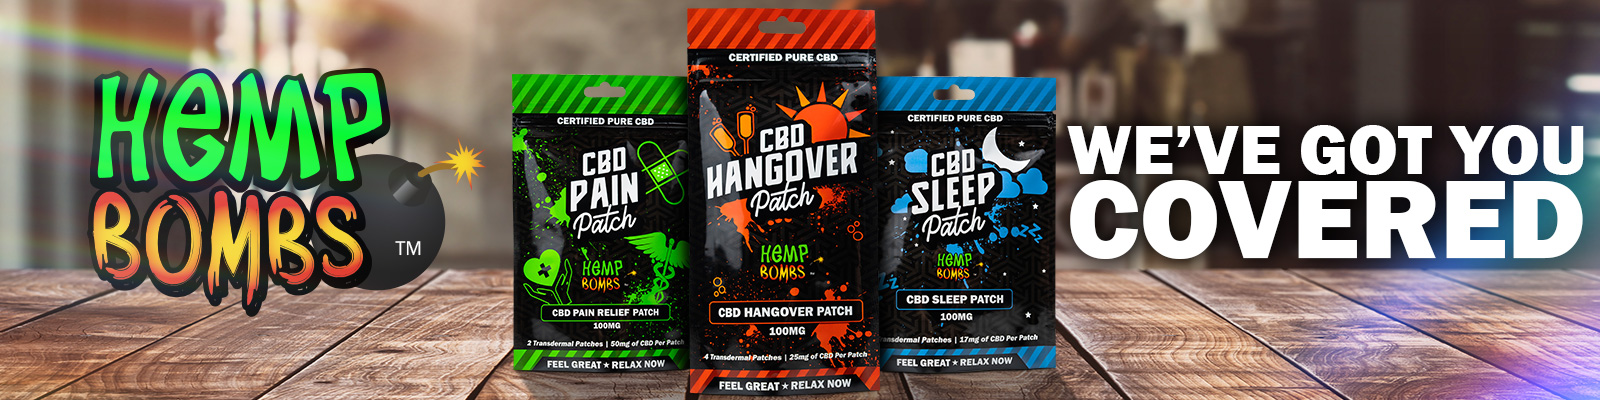 CBD Patches for Sleep, Pain and Hangover